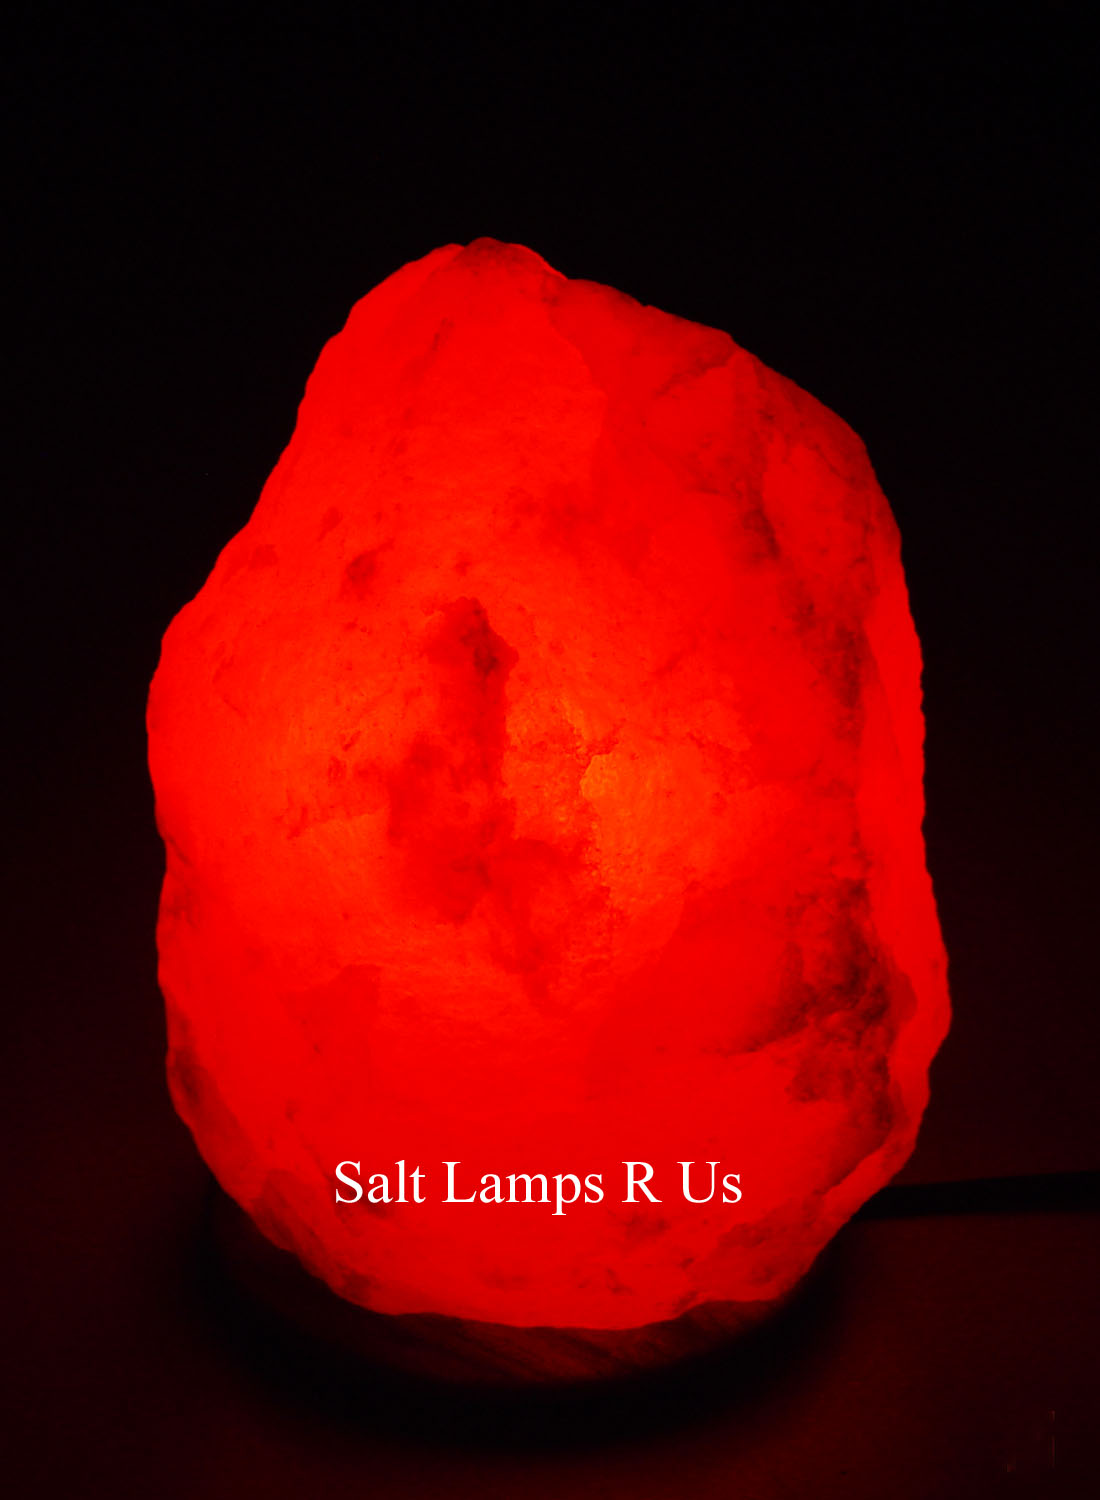 White Himalayan Salt Lamp with an Att/Wooden Base 2-3kg LA701 Saltlamps-R-Us Co.Uk